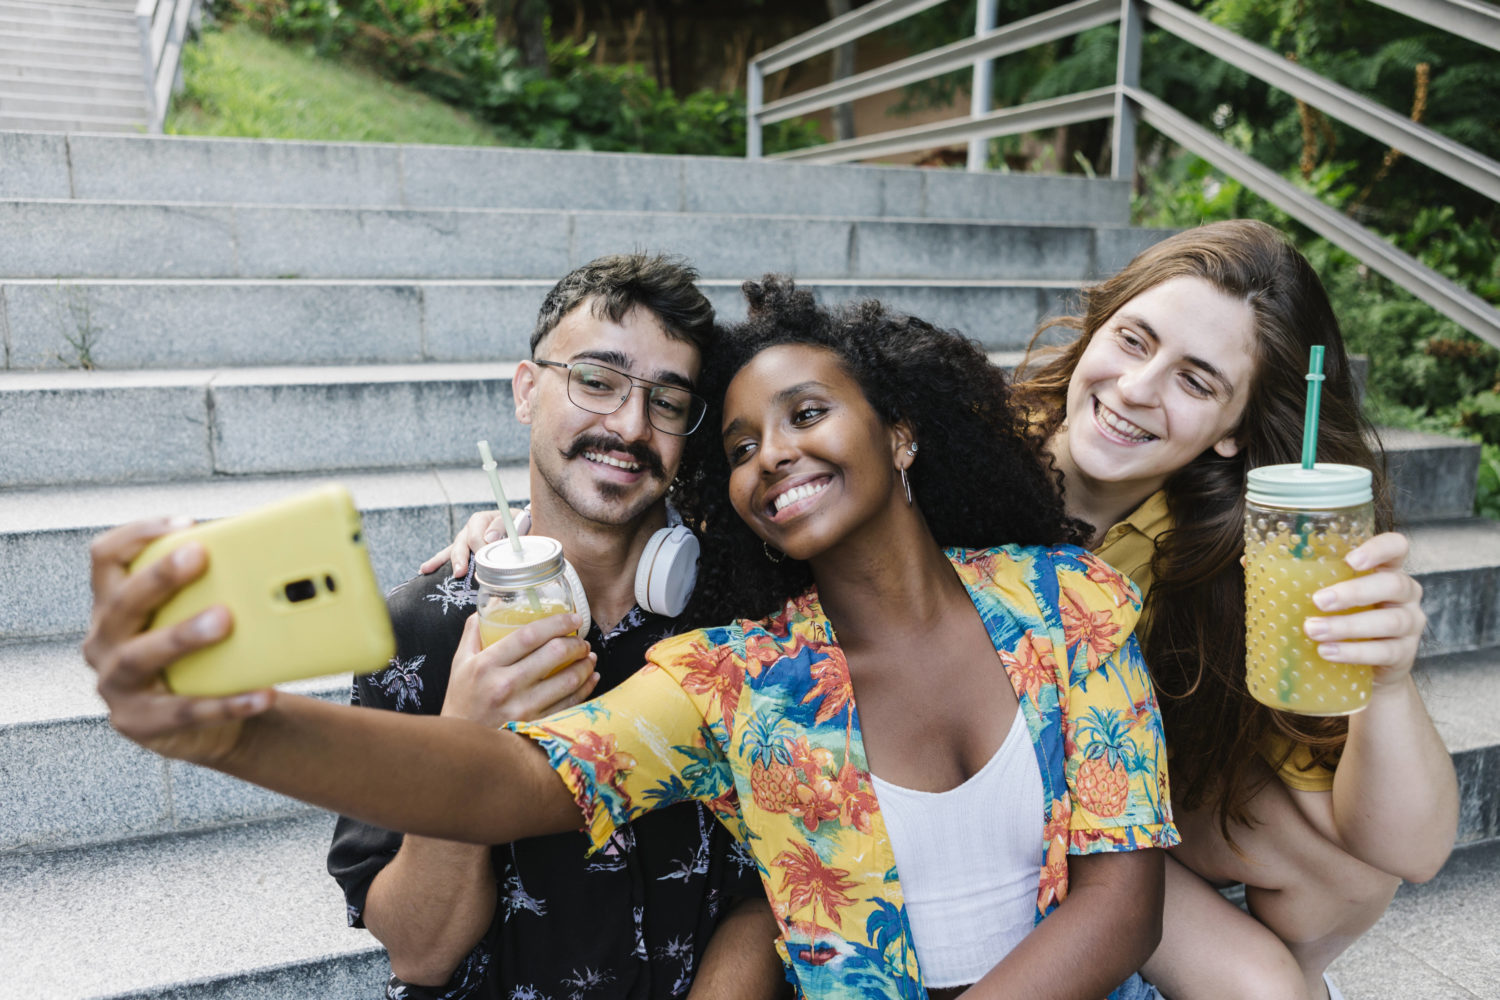 imago images / Westend61 Friends taking selfie on smart phone while sitting in public park model released Symbolfoto XLGF00570